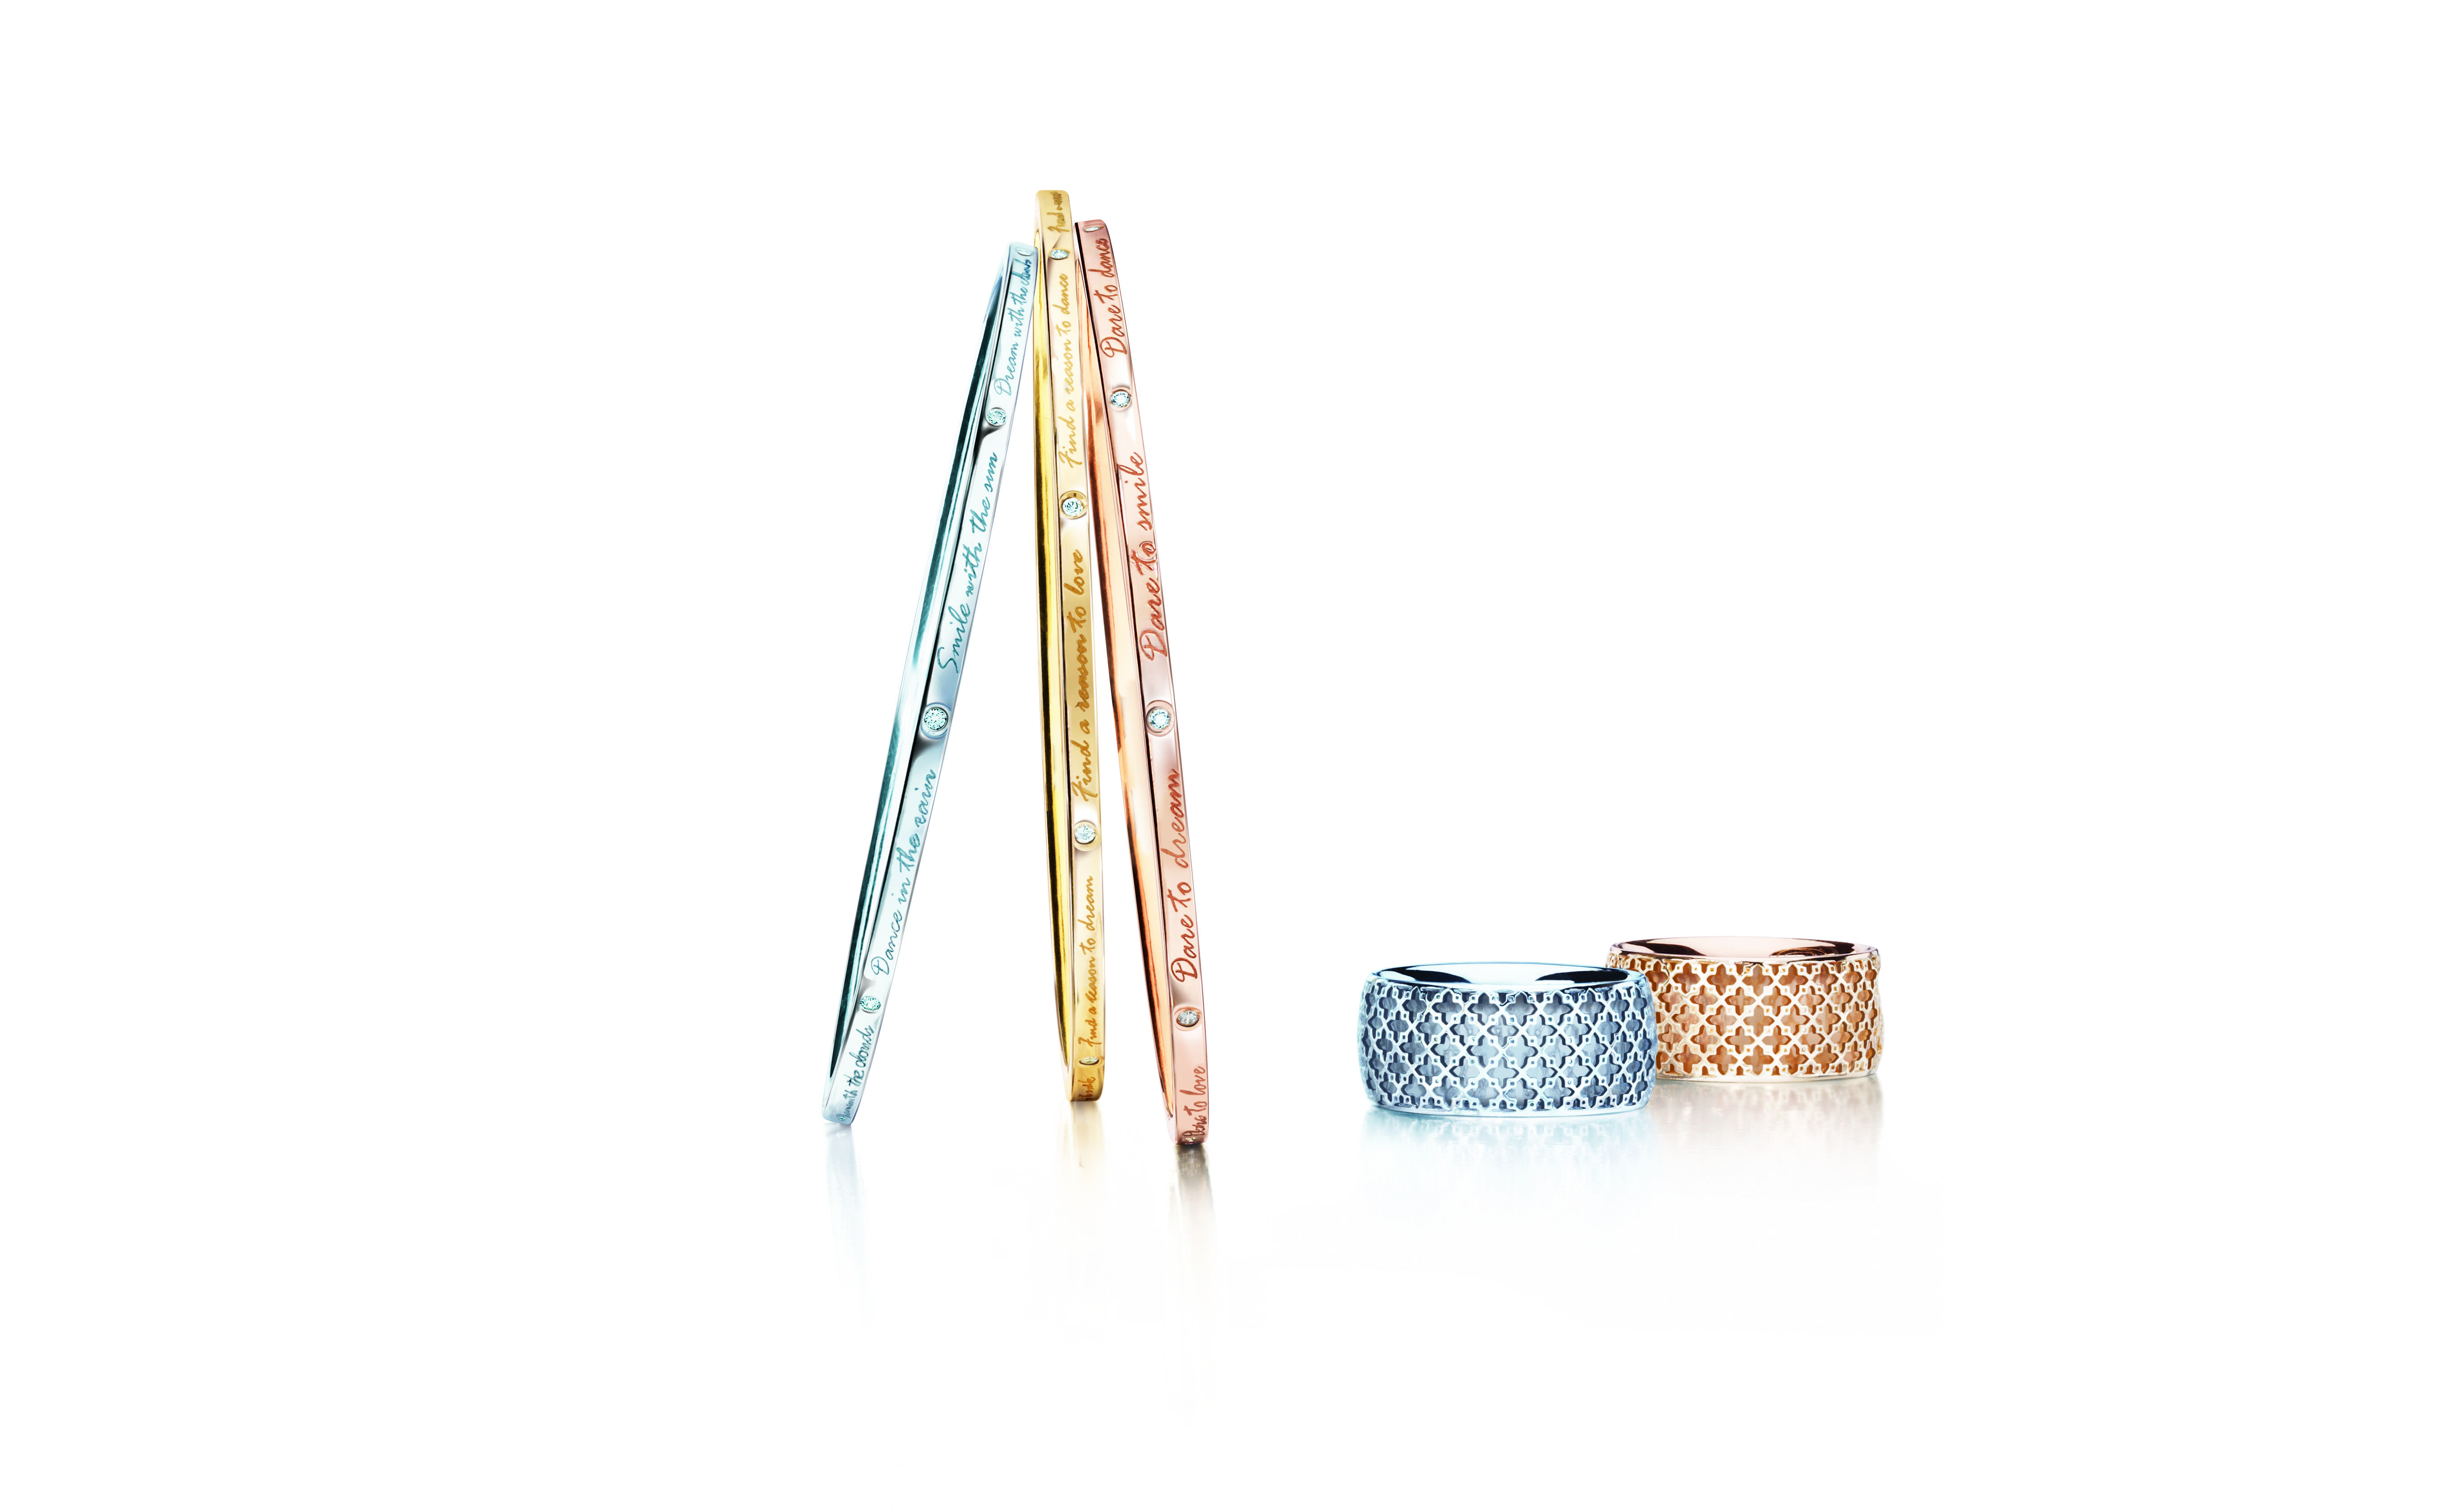 BIRKS MUSE Collection Bangles & Ring